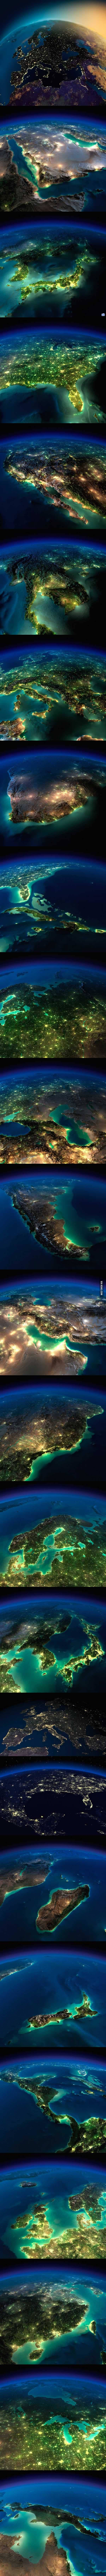 Images taken of land masses (Earth at Night) by  . . . . geostationary satellites using long term exposure